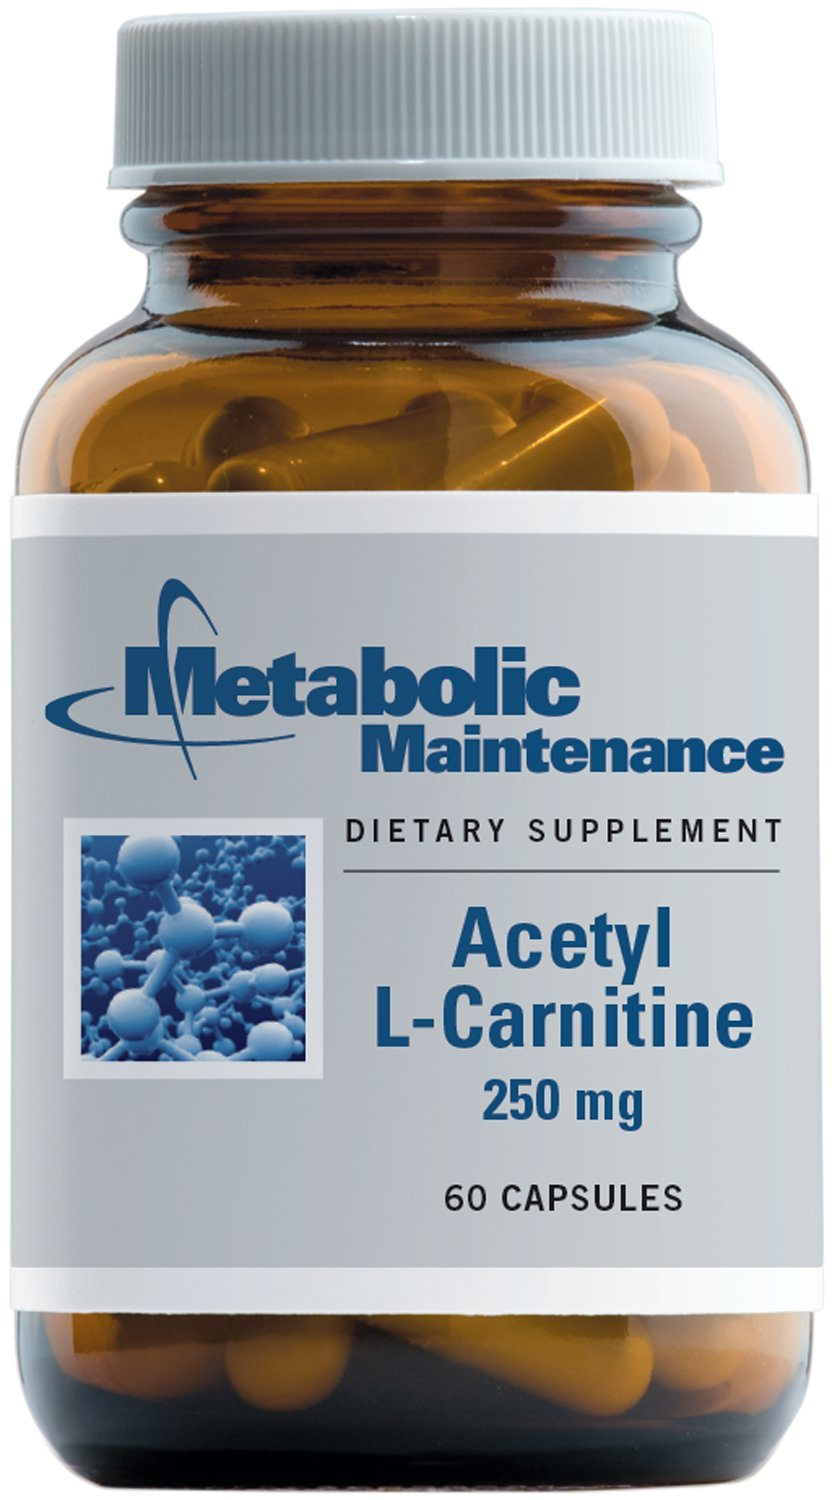 Metabolic Maintenance - Acetyl L-Carnitine - 250 mg, Antioxidant + Cognitive Support, 60 Capsules